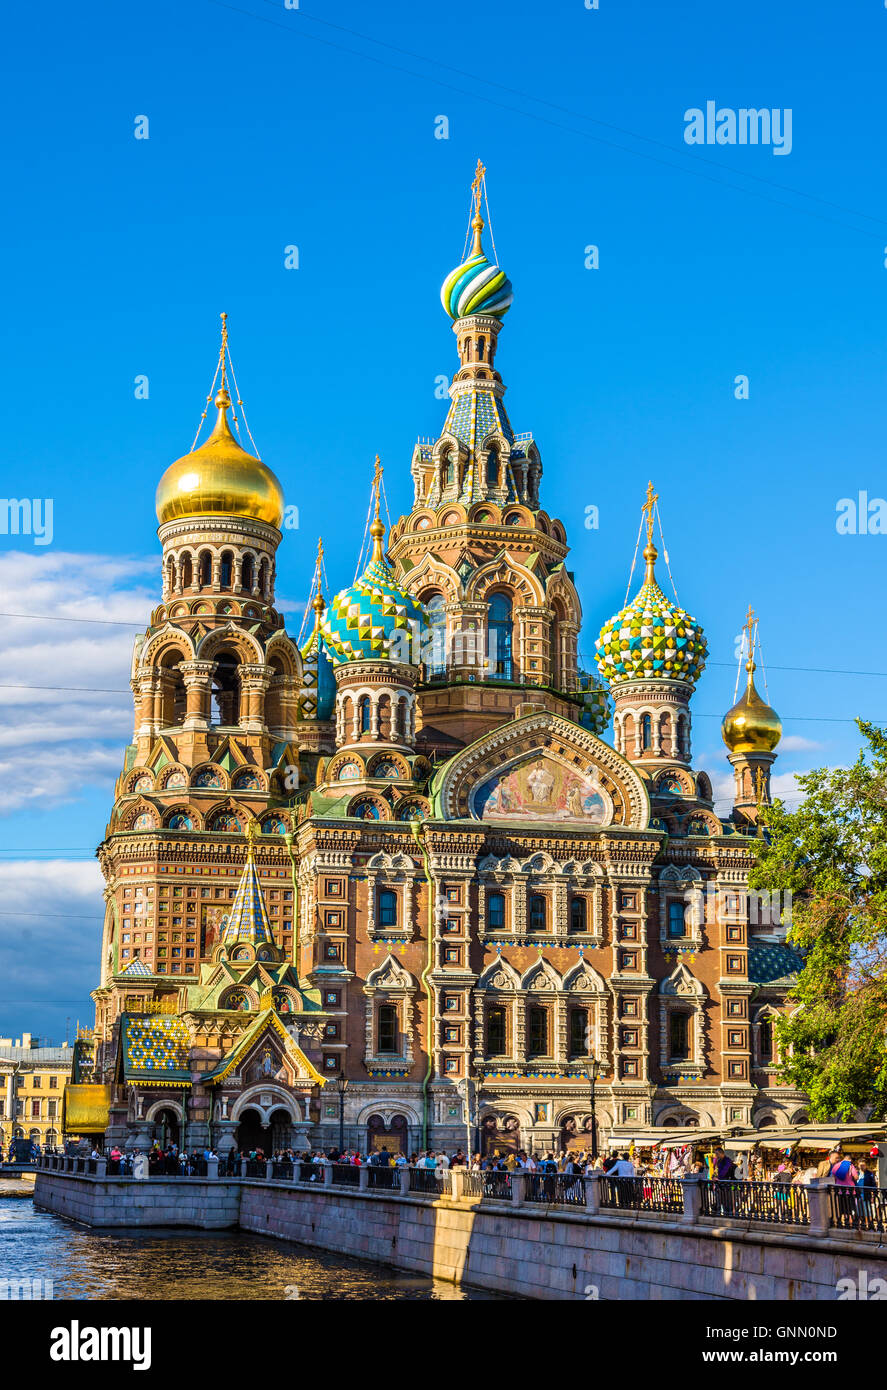 Church of the Savior on Blood - St. Petersburg, Russia - Stock Image